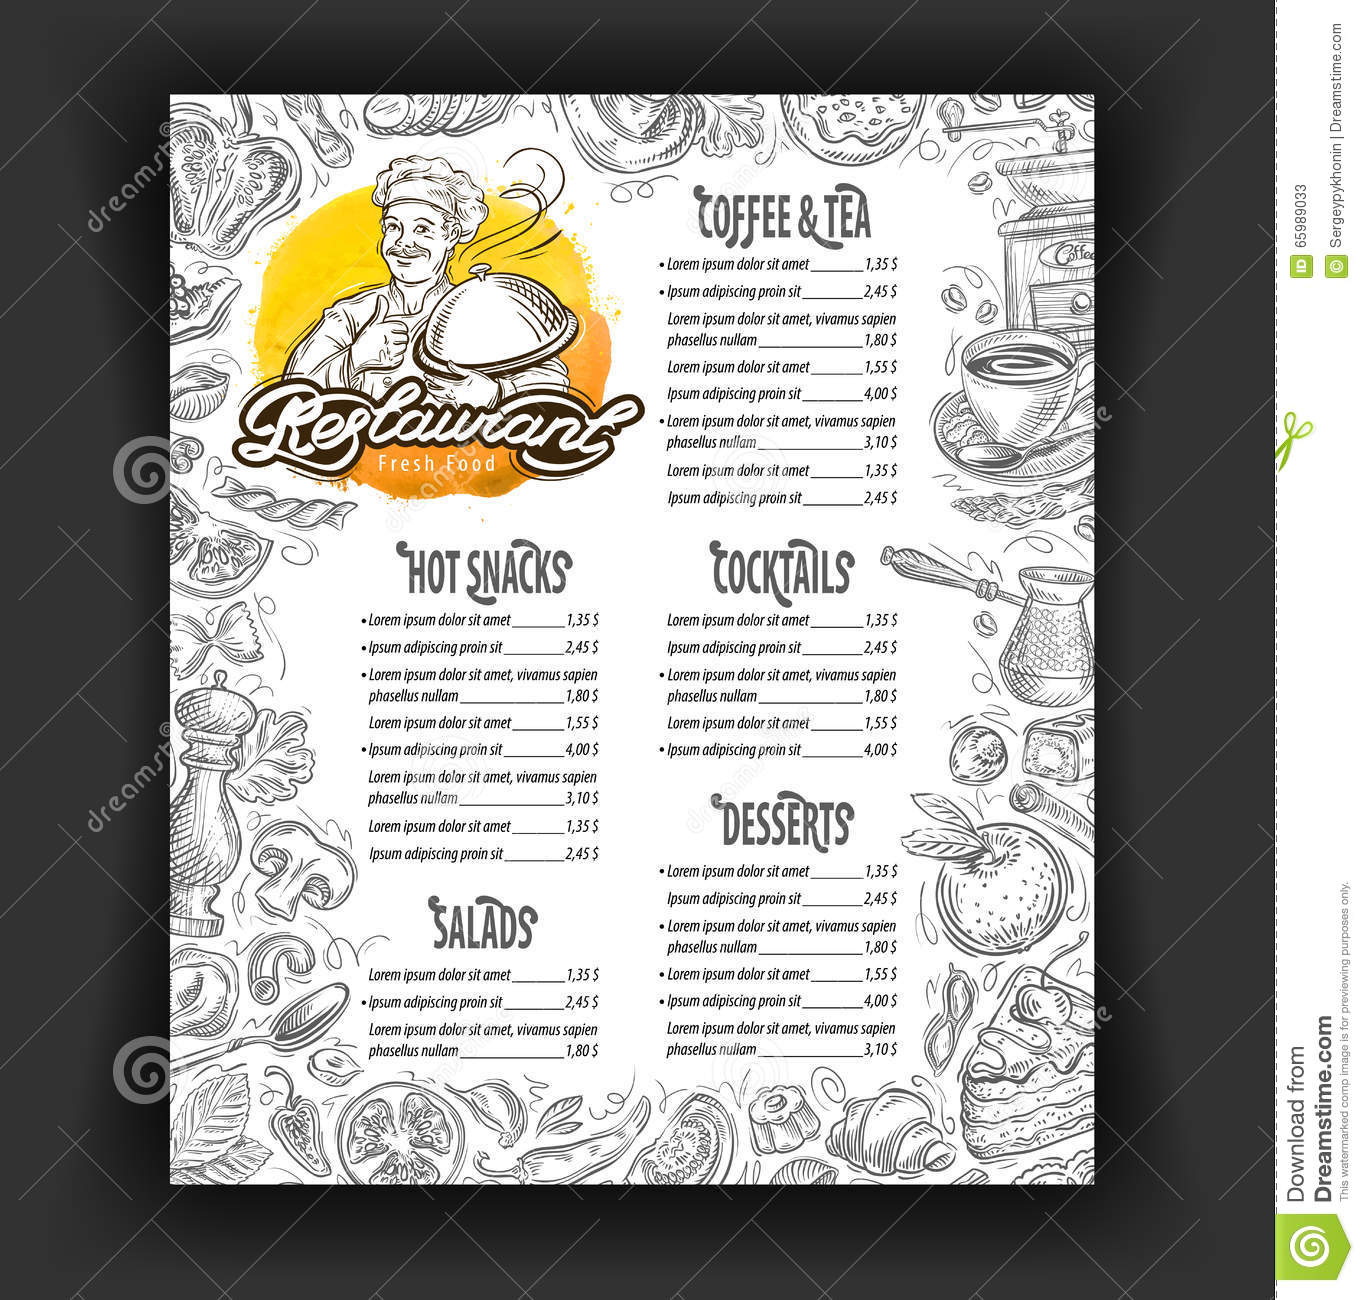 Cafe menu food and drinks hand drawn icons cartoon vector